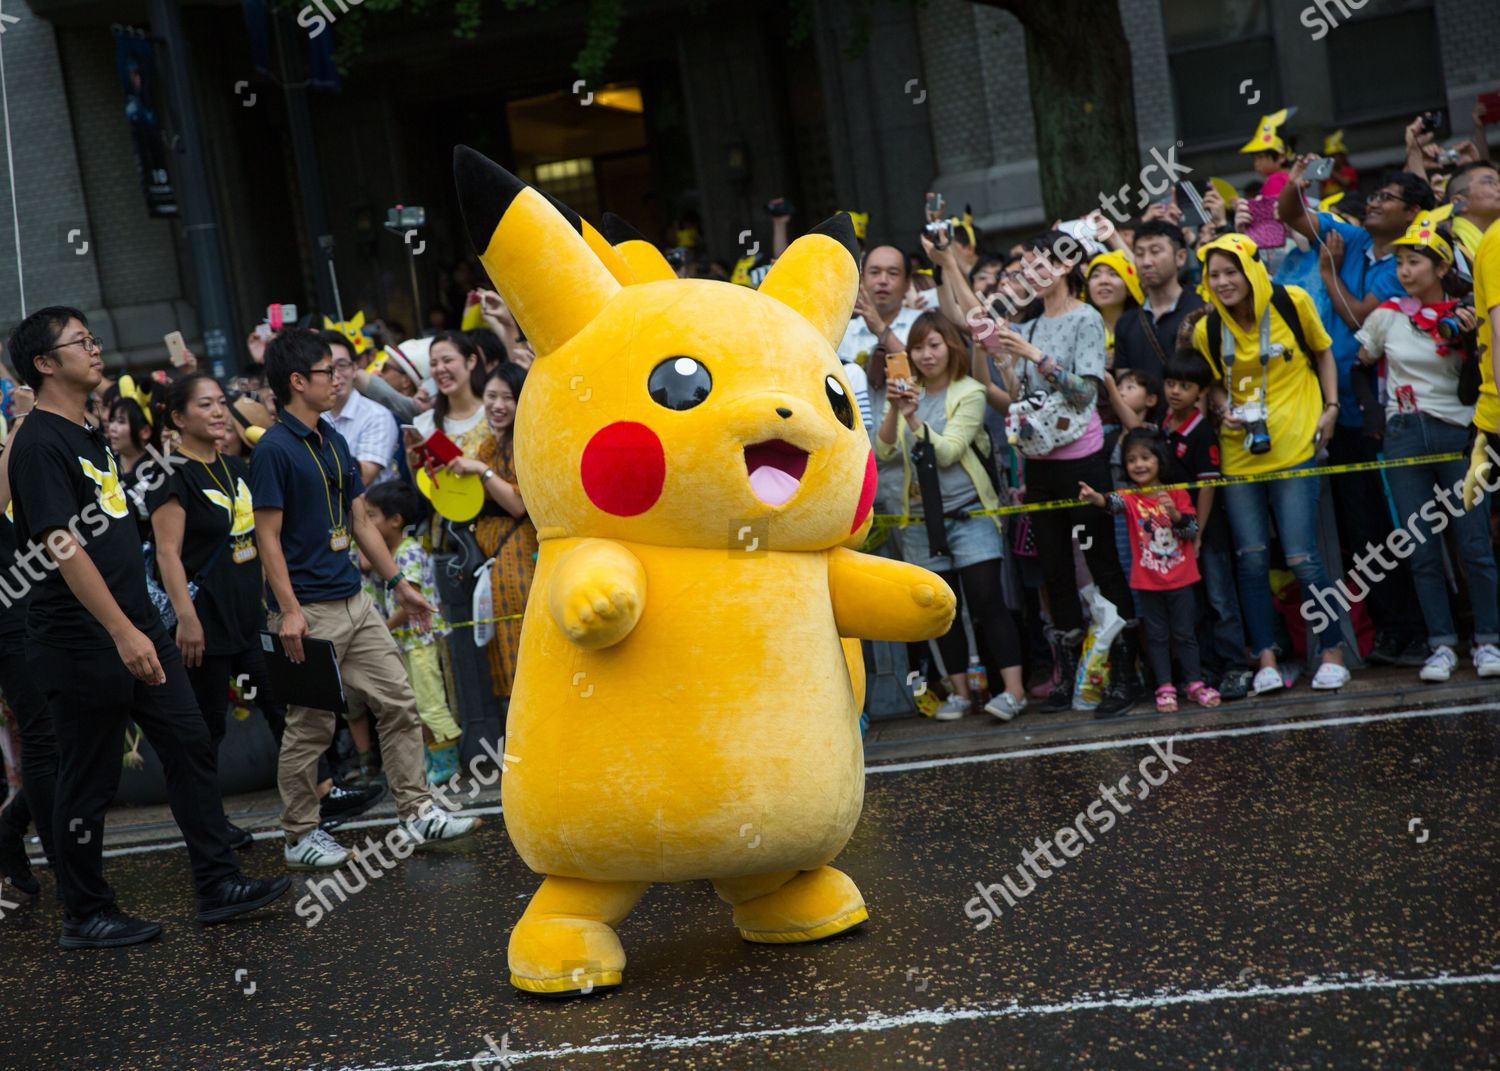 Pikachu character marches during Pikachu Carnival Parade